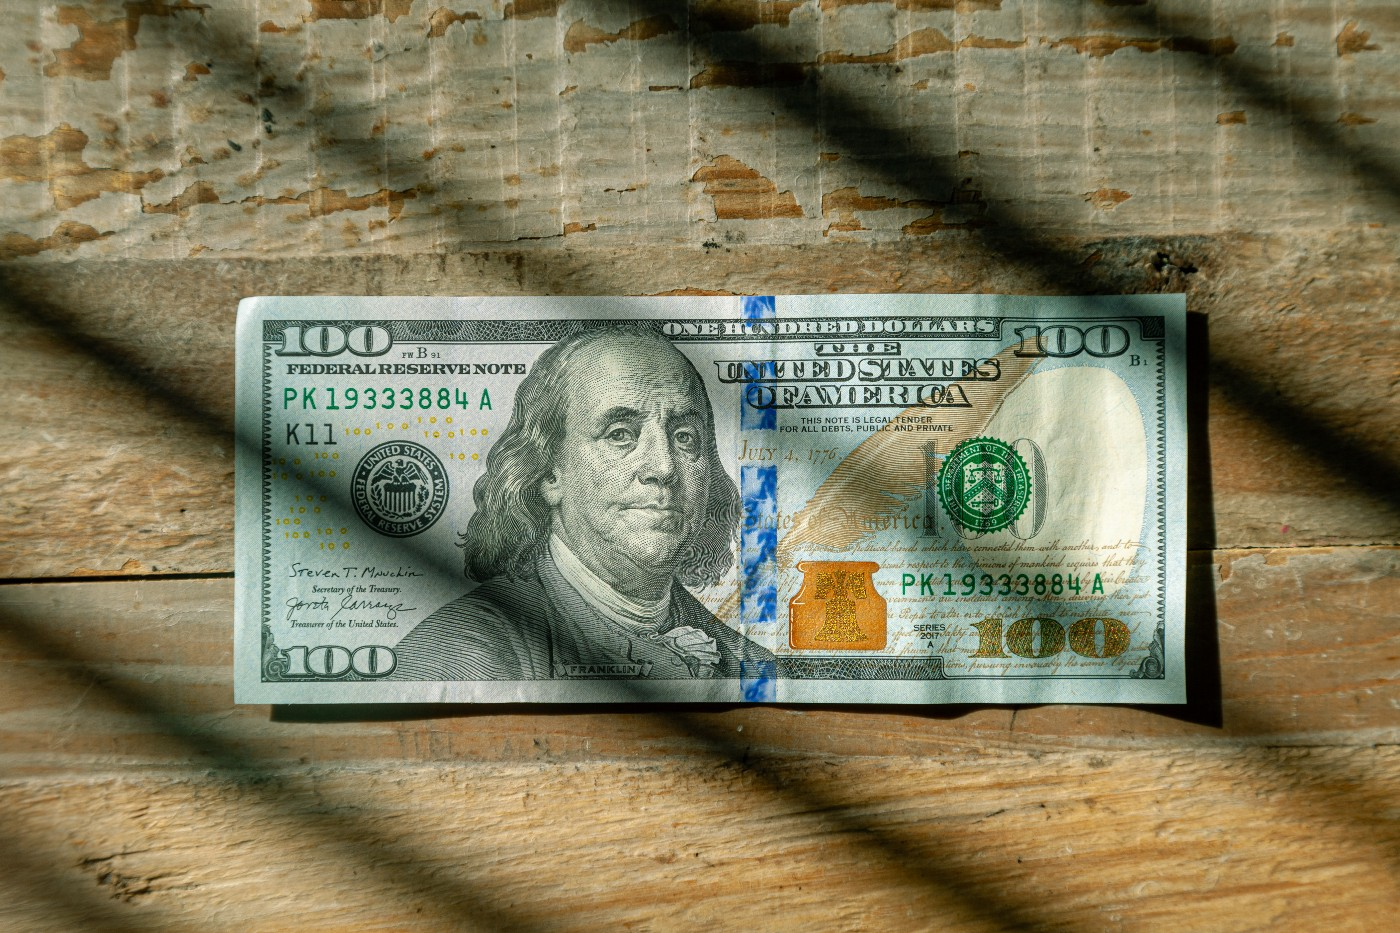 100 dollar bill on a wooden table with diagonal strips of light.